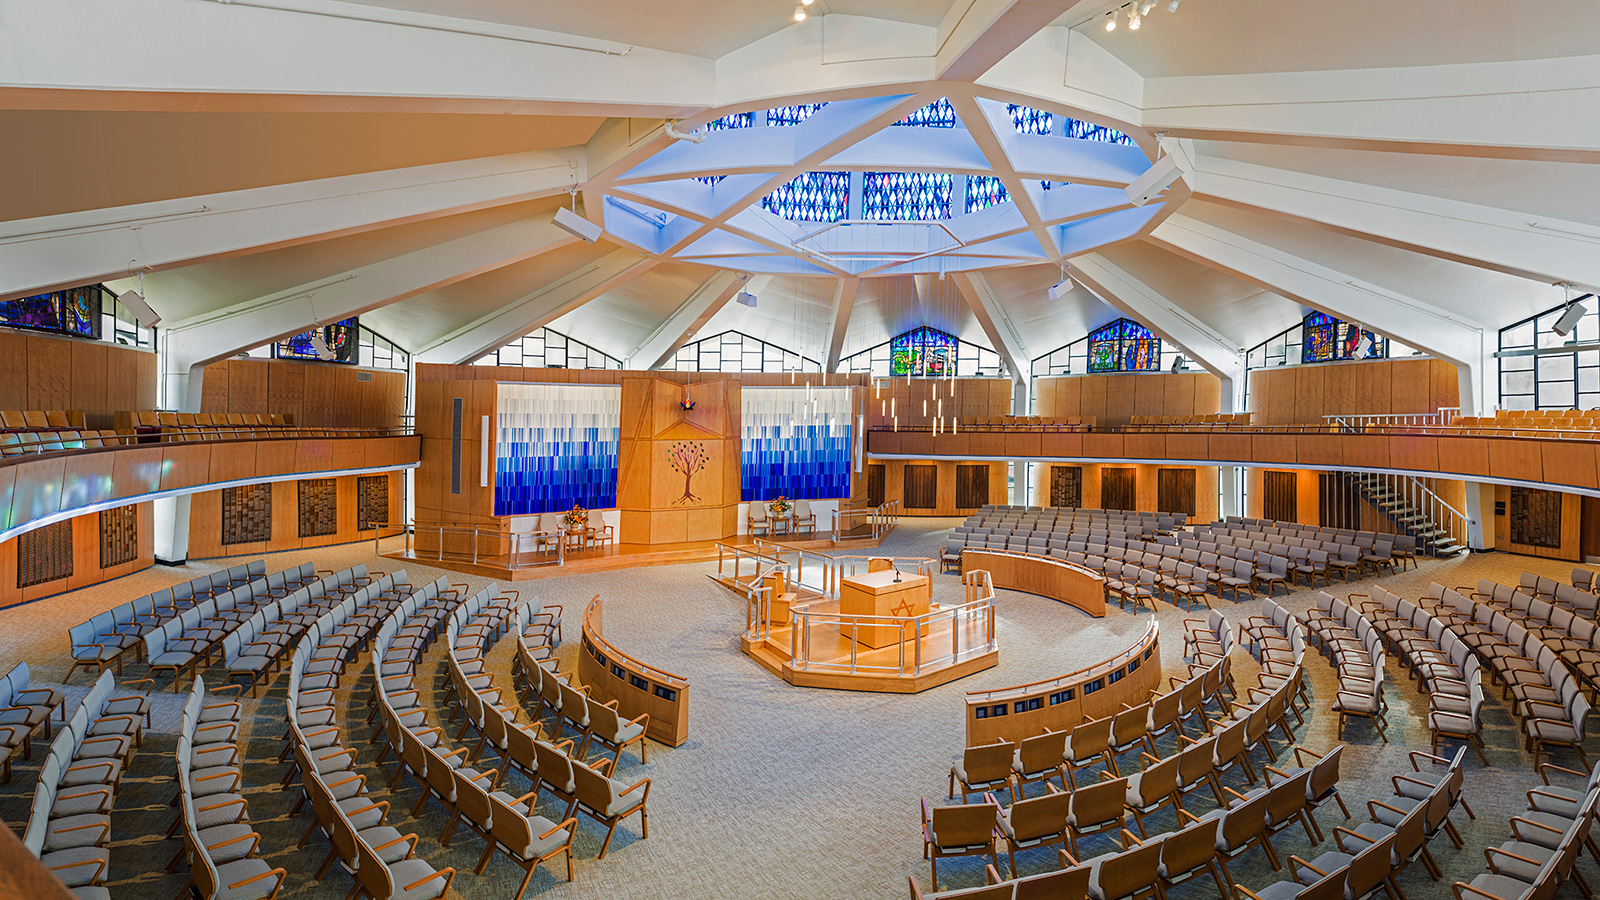 Temple Adath Israel